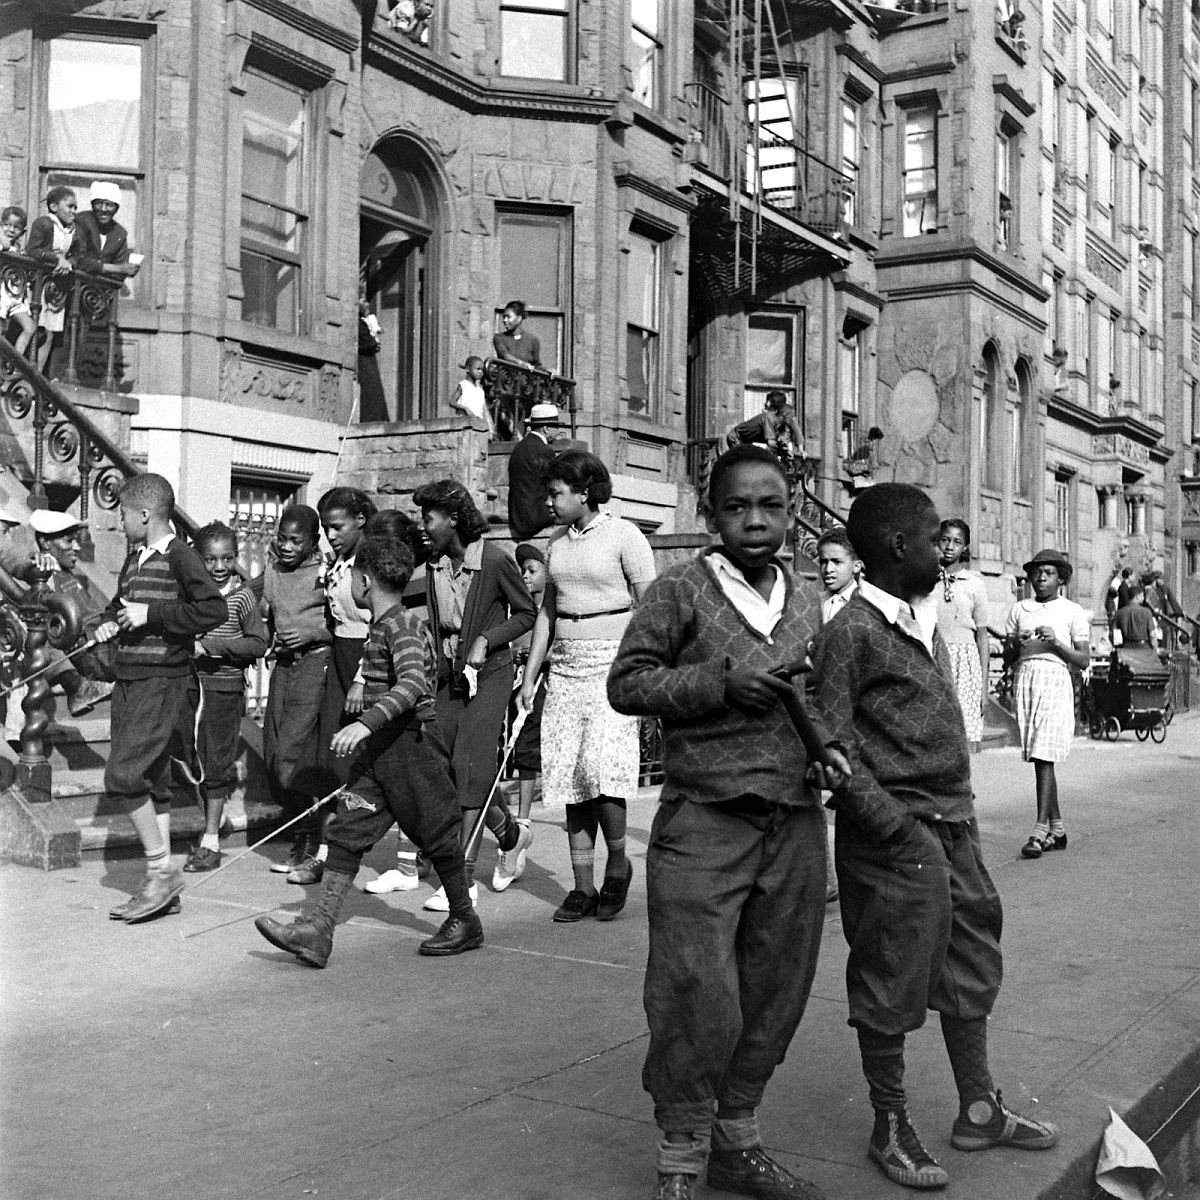 Children on a Harlem street, 1938.